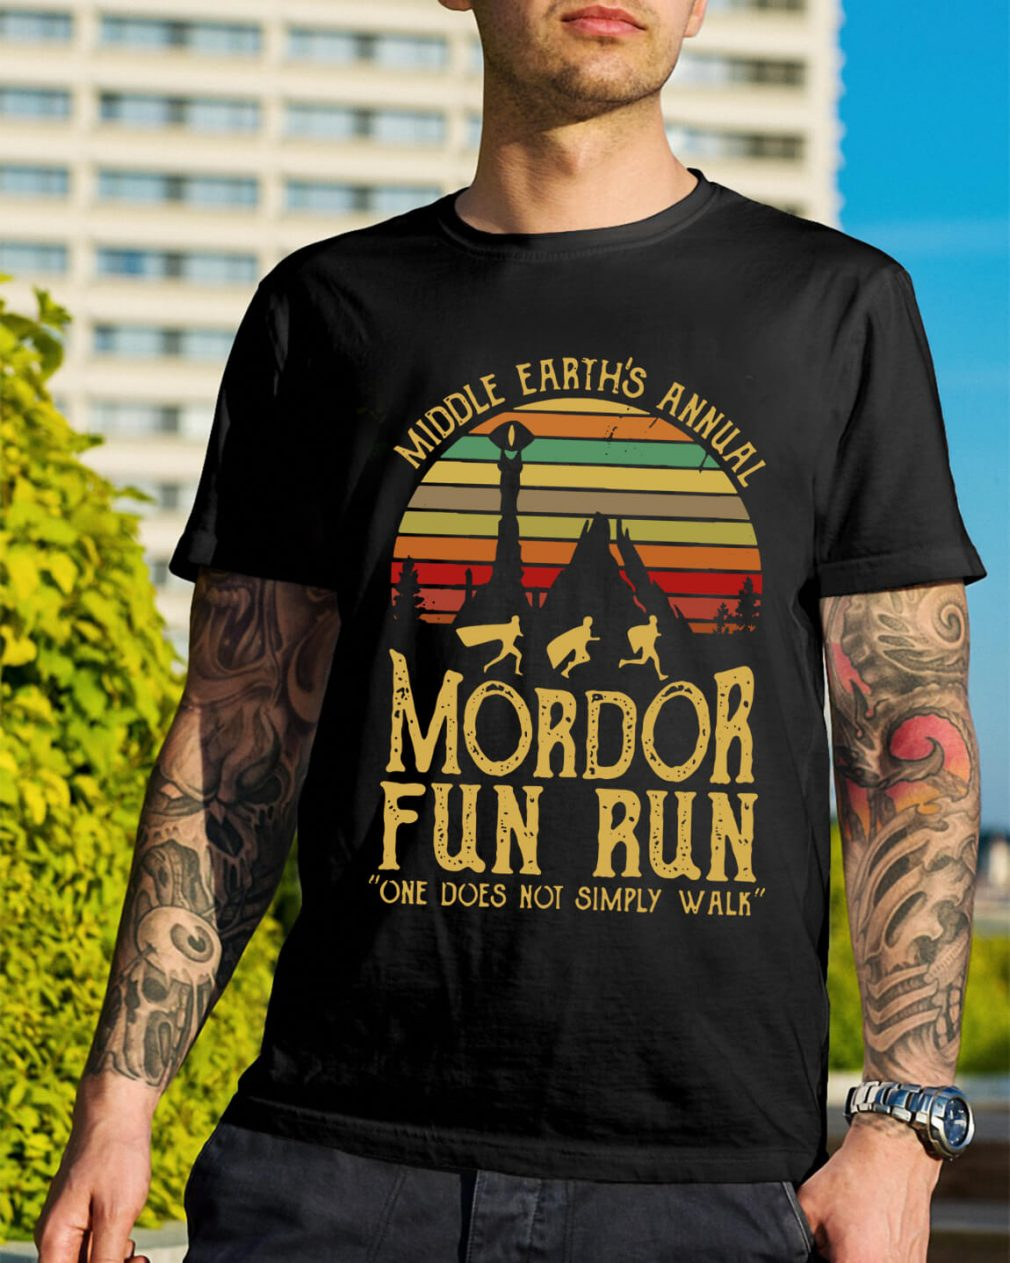 Sunset Middle Earth's annual Mordor fun run one does not simply shirt